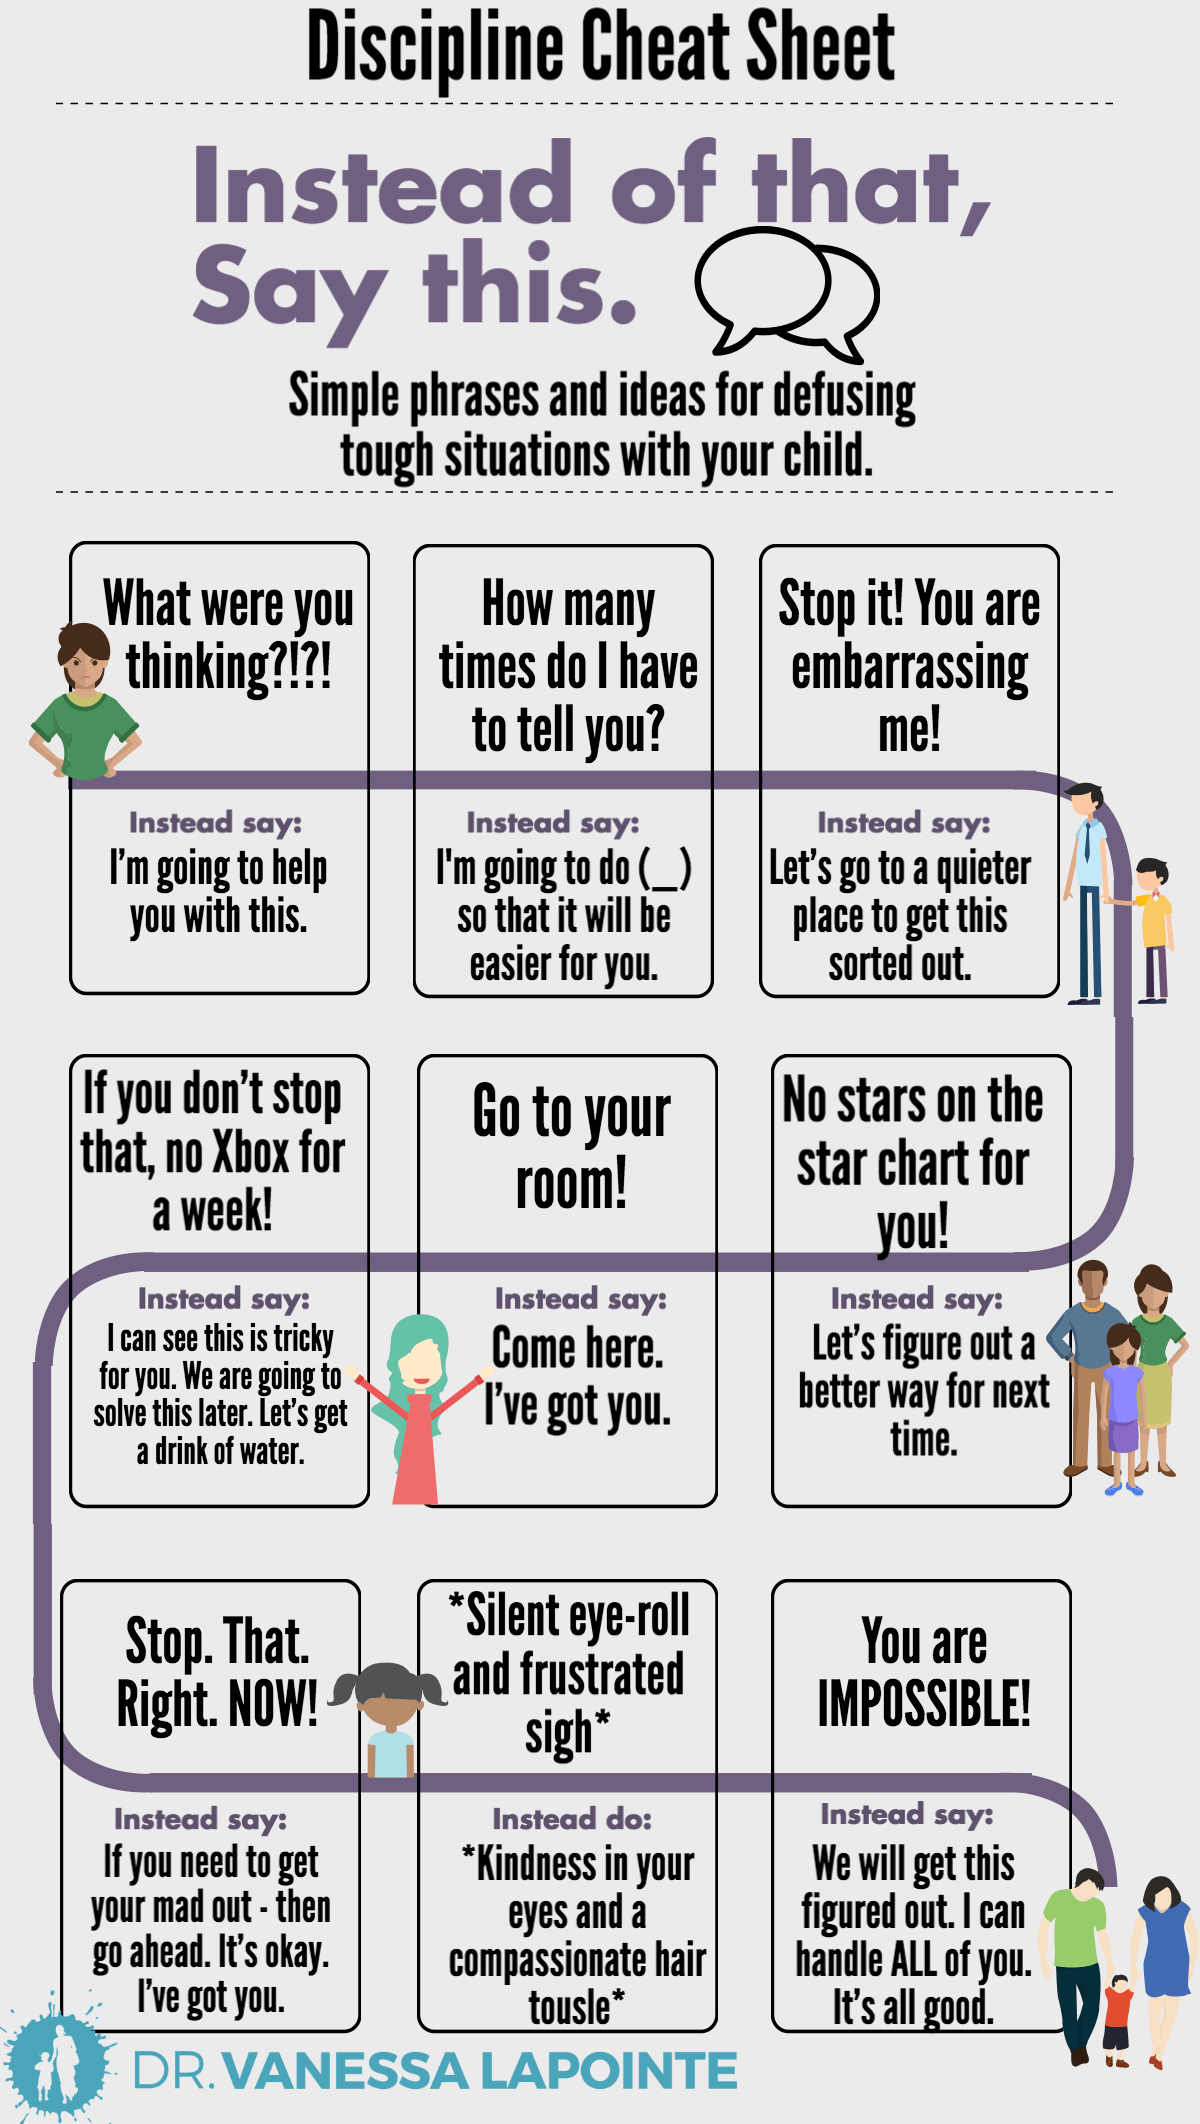 the discipline cheat sheet an infographic dr vanessa lapointe